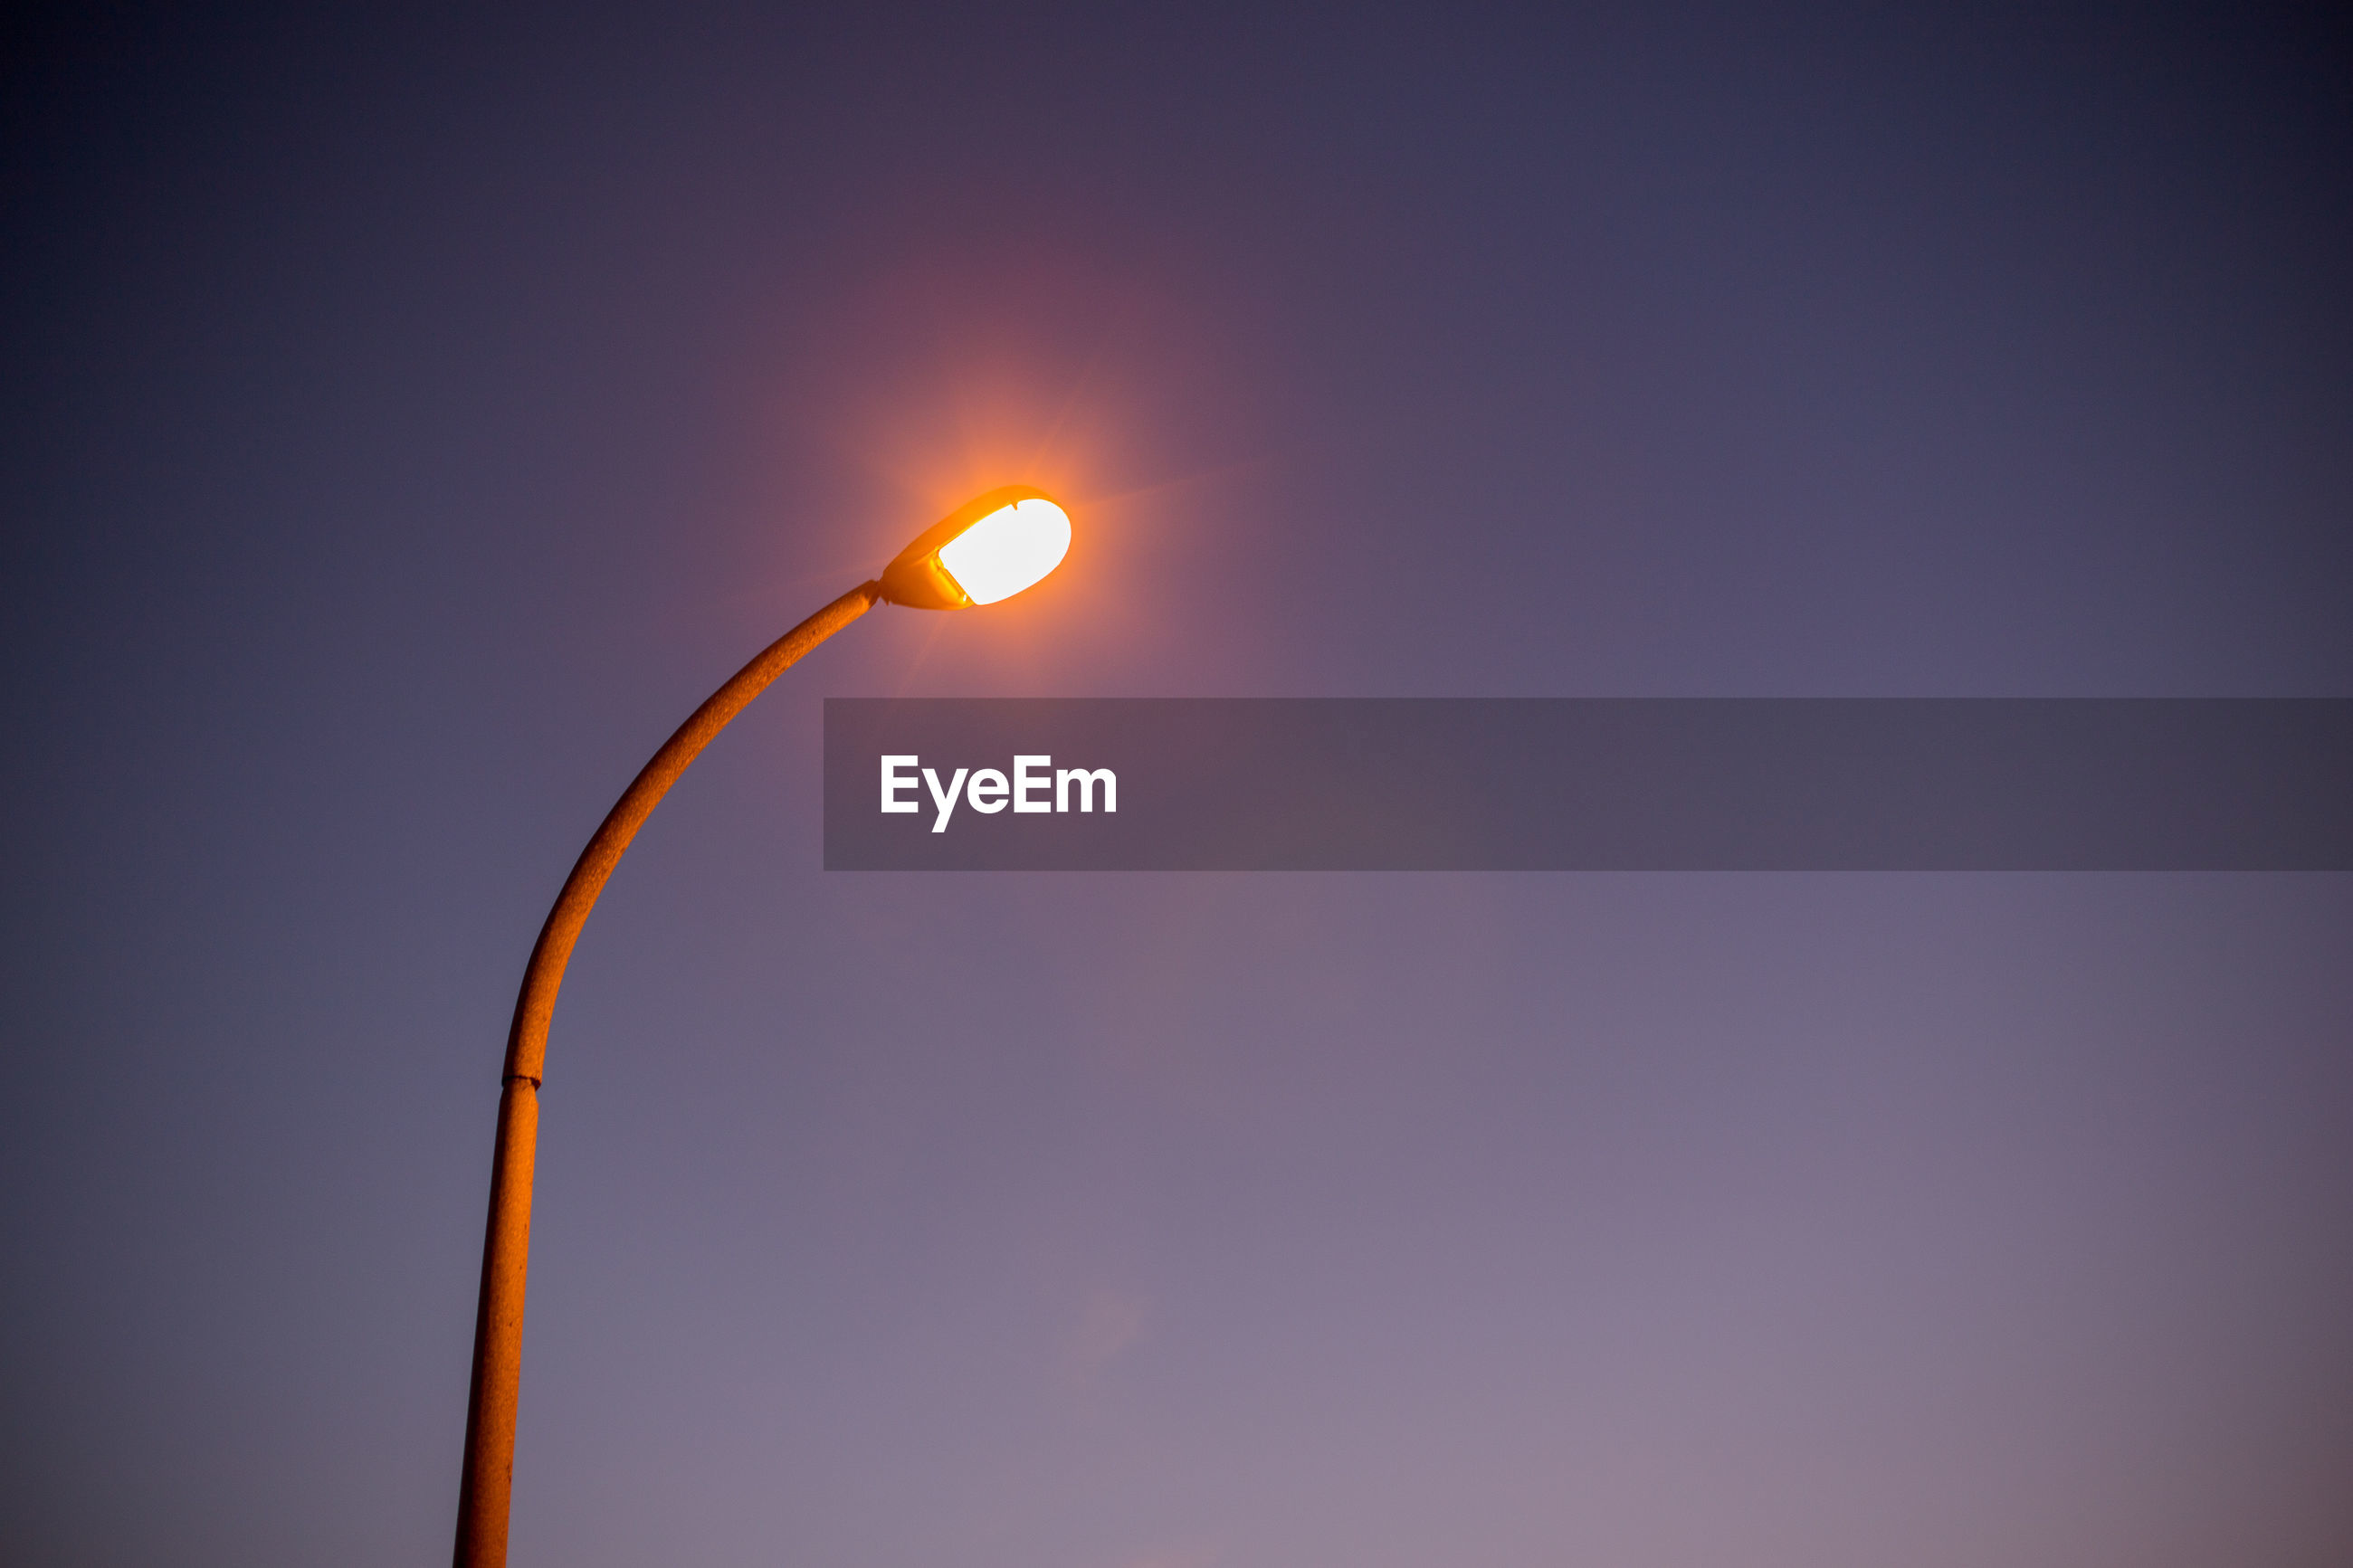 Low angle view of illuminated street light against sky at dusk